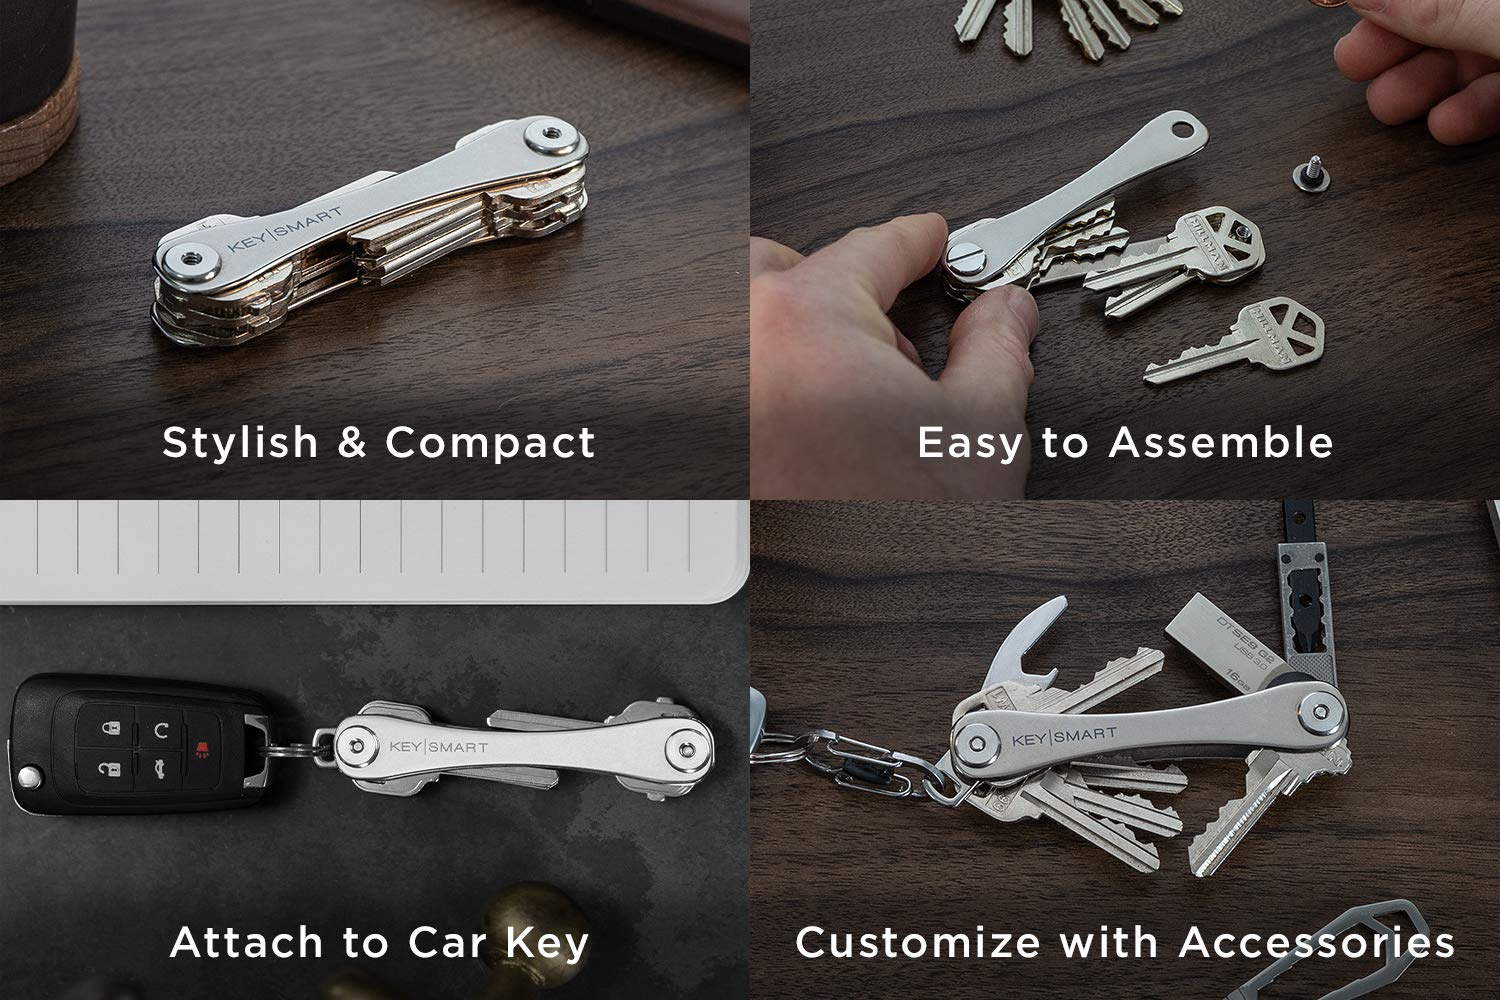 Amazon.com: KeySmart - Compact Key Holder (Titanium): Office ...